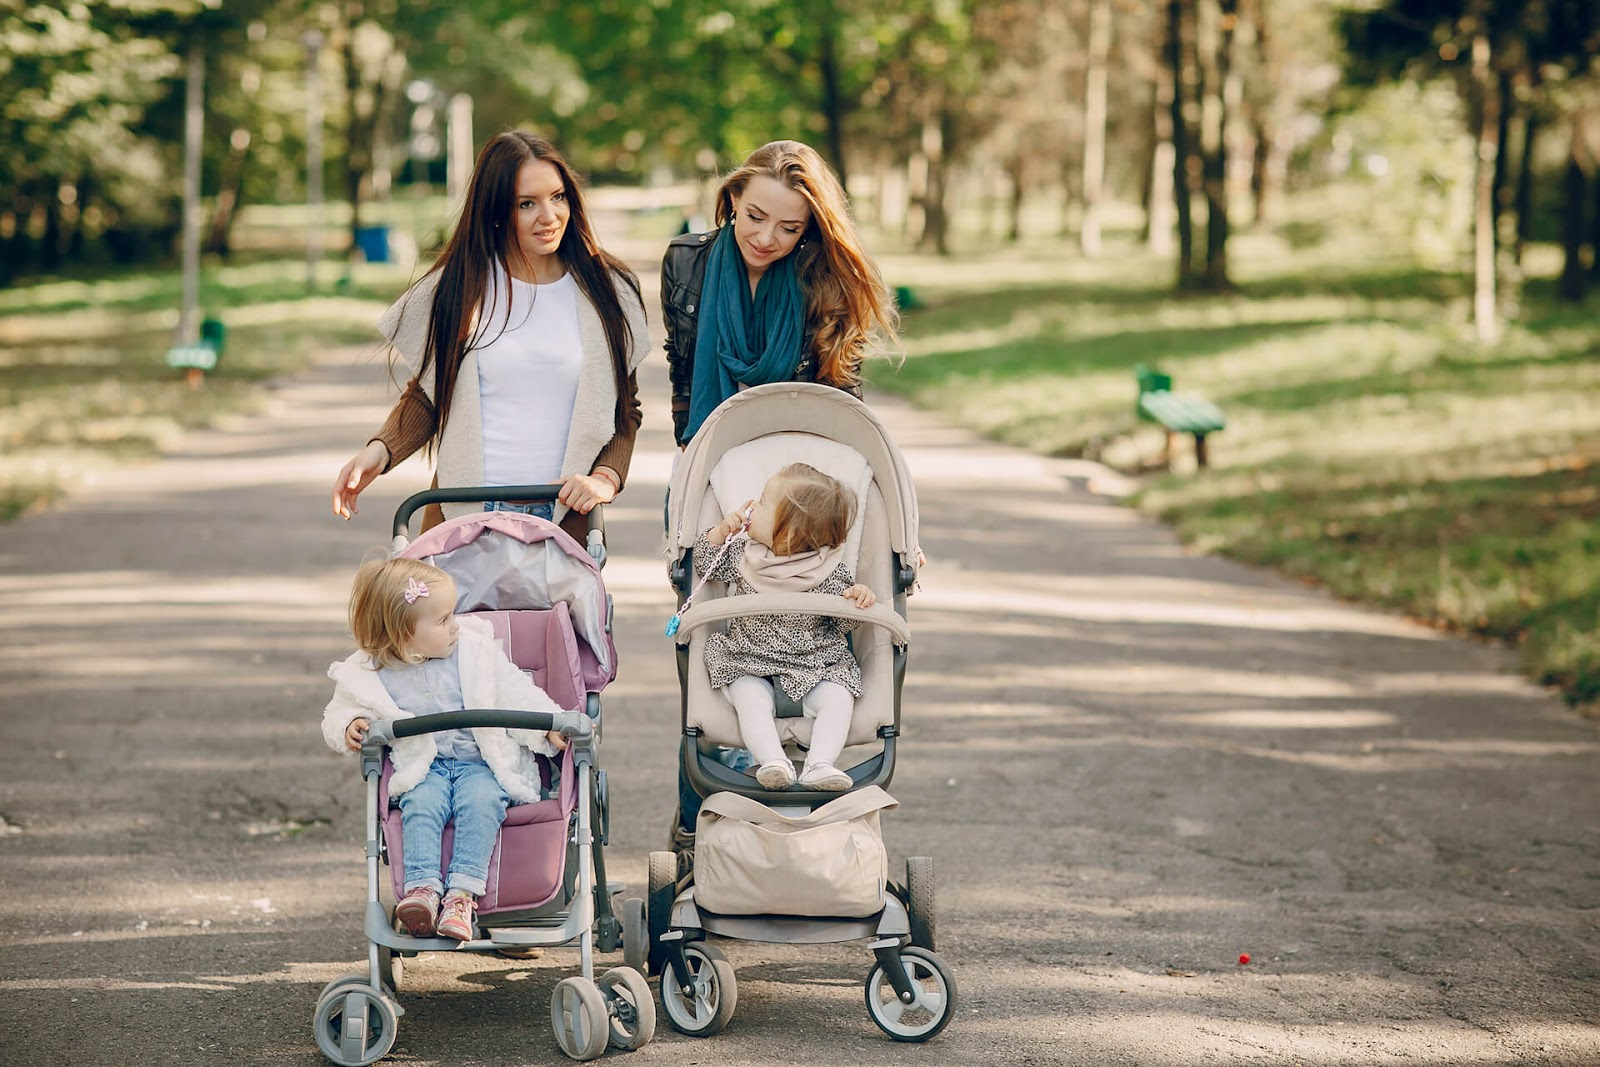 Two women pushing their strollers together